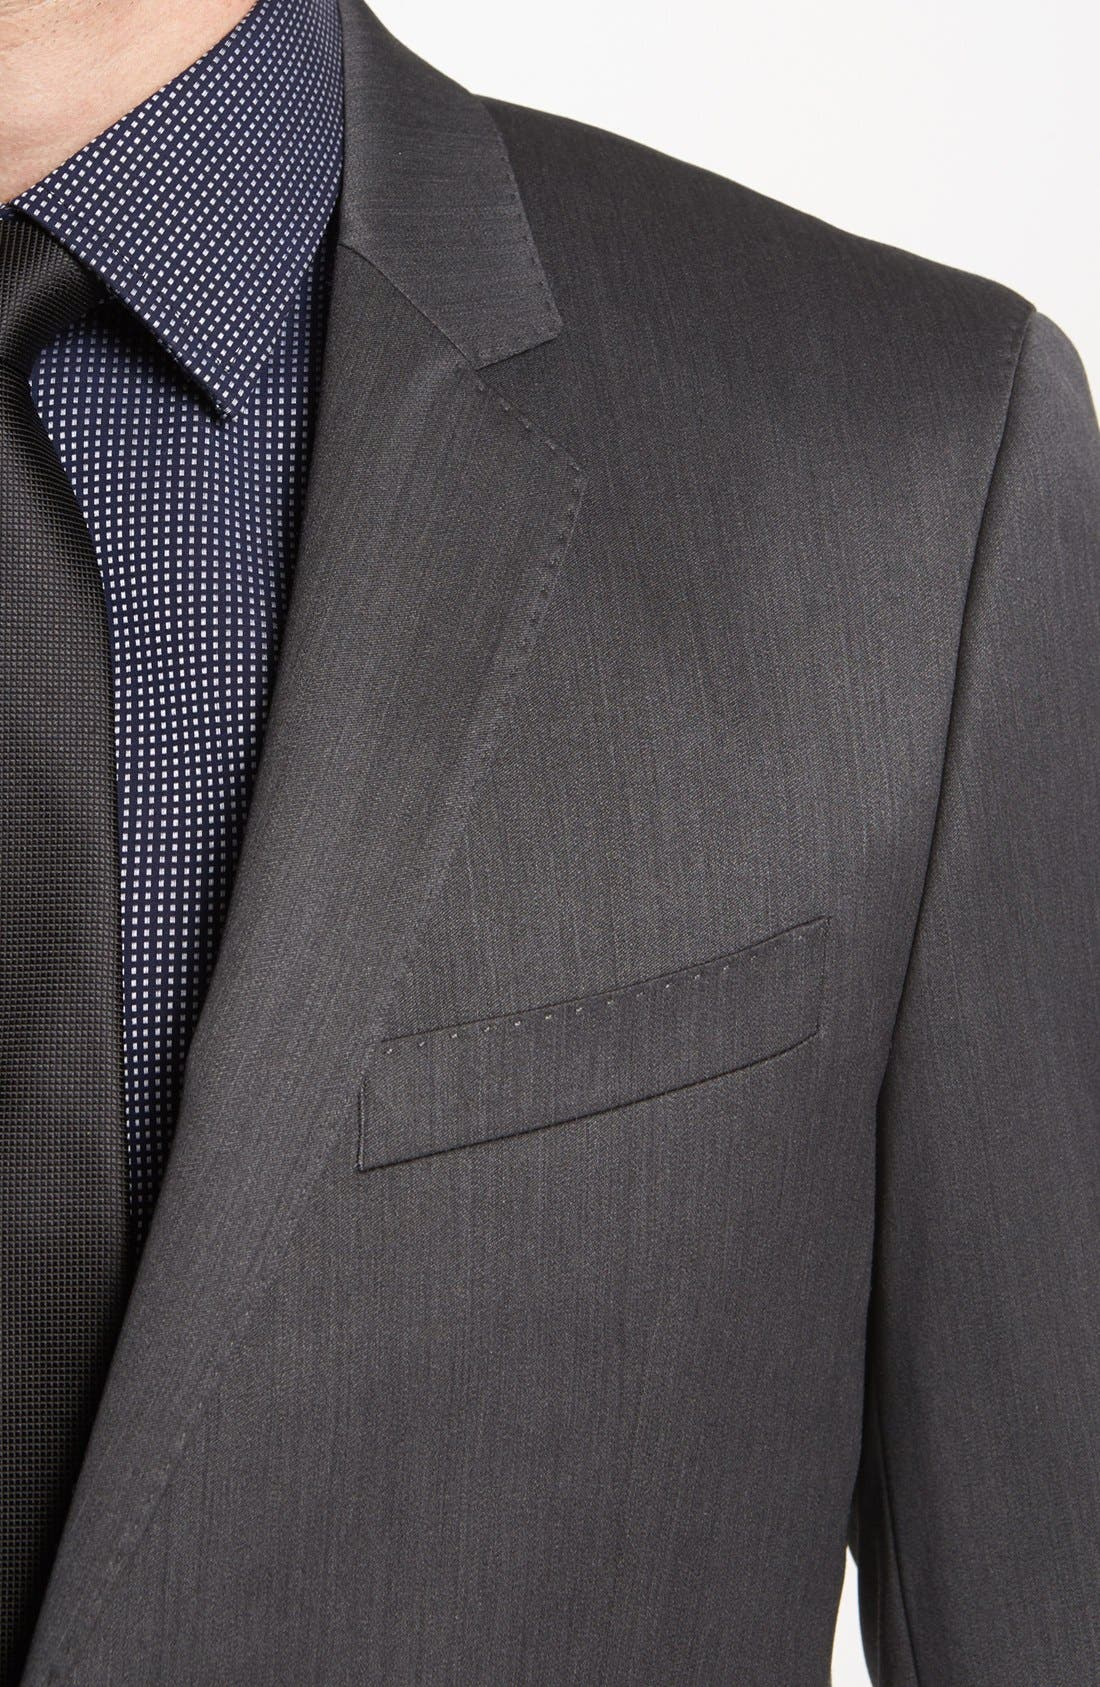 Alternate Image 2  - BOSS HUGO BOSS 'Ryan/Win' Extra Trim Fit Suit